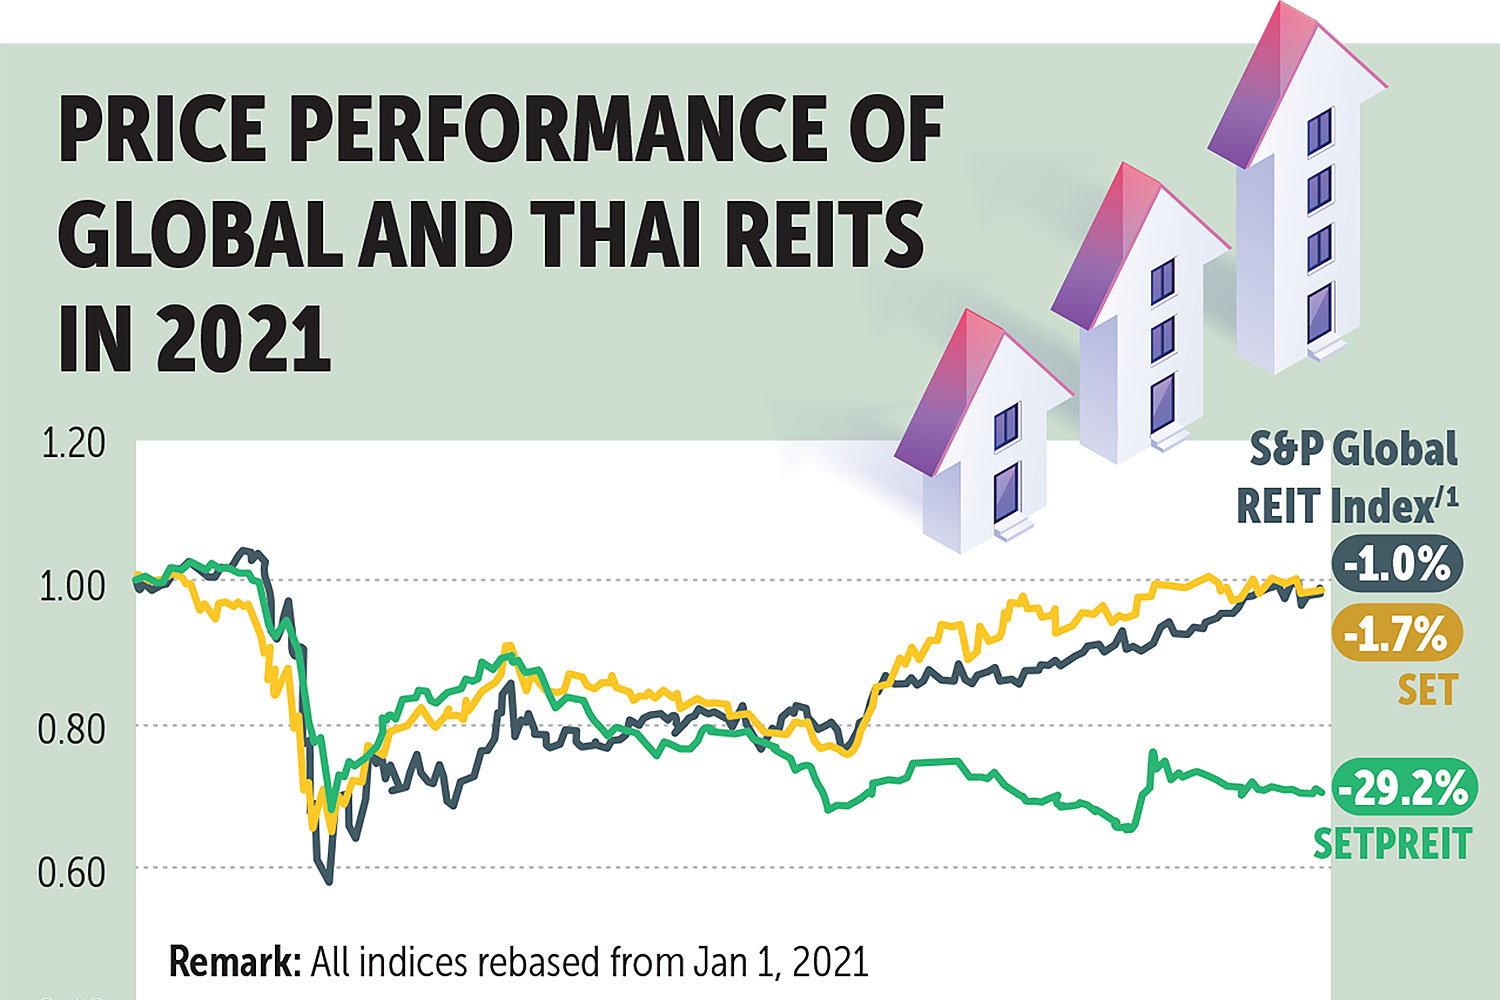 REIT prices edging near pre-Covid levels